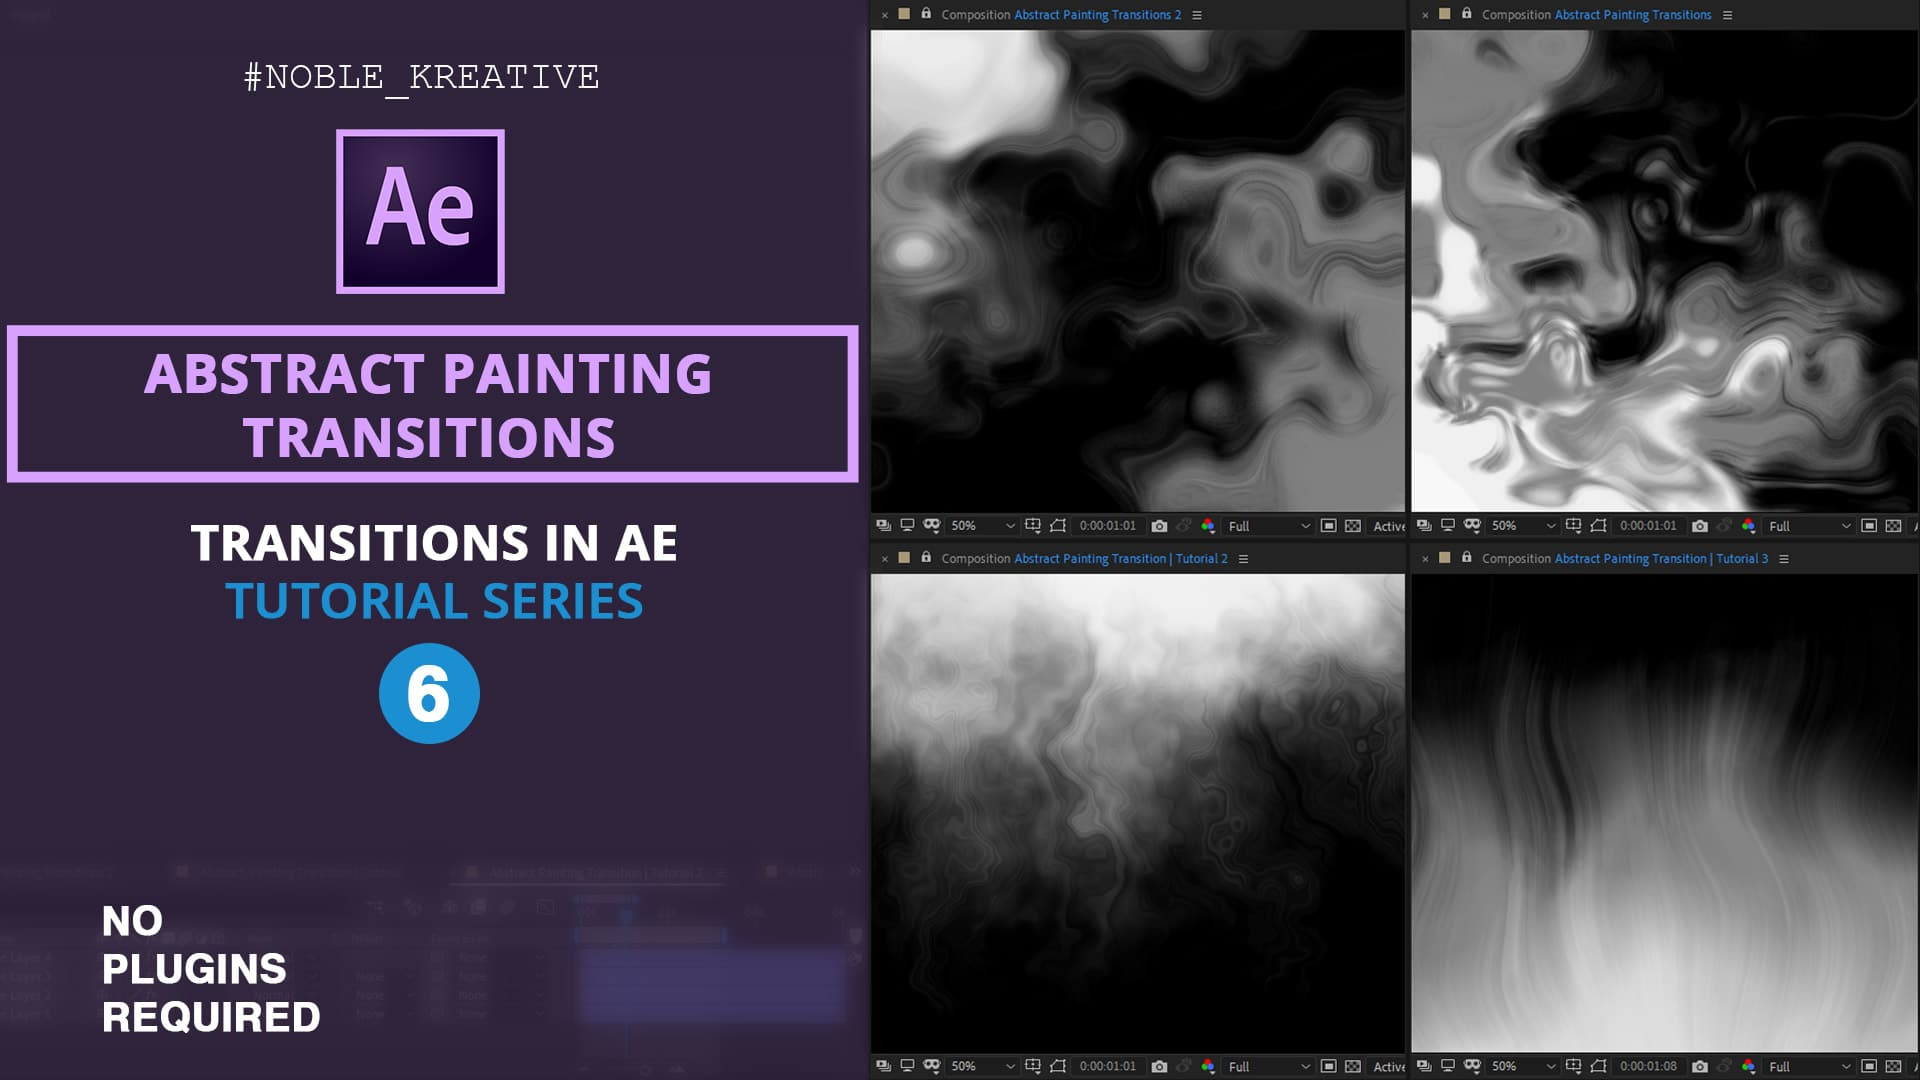 Abstract Painting Transitions , After Effects , Transitions in After Effects , After Effects Transitions , Transitions FX , After Effects Tutorials . Motion Graphics , Motion Graphics Tutorials